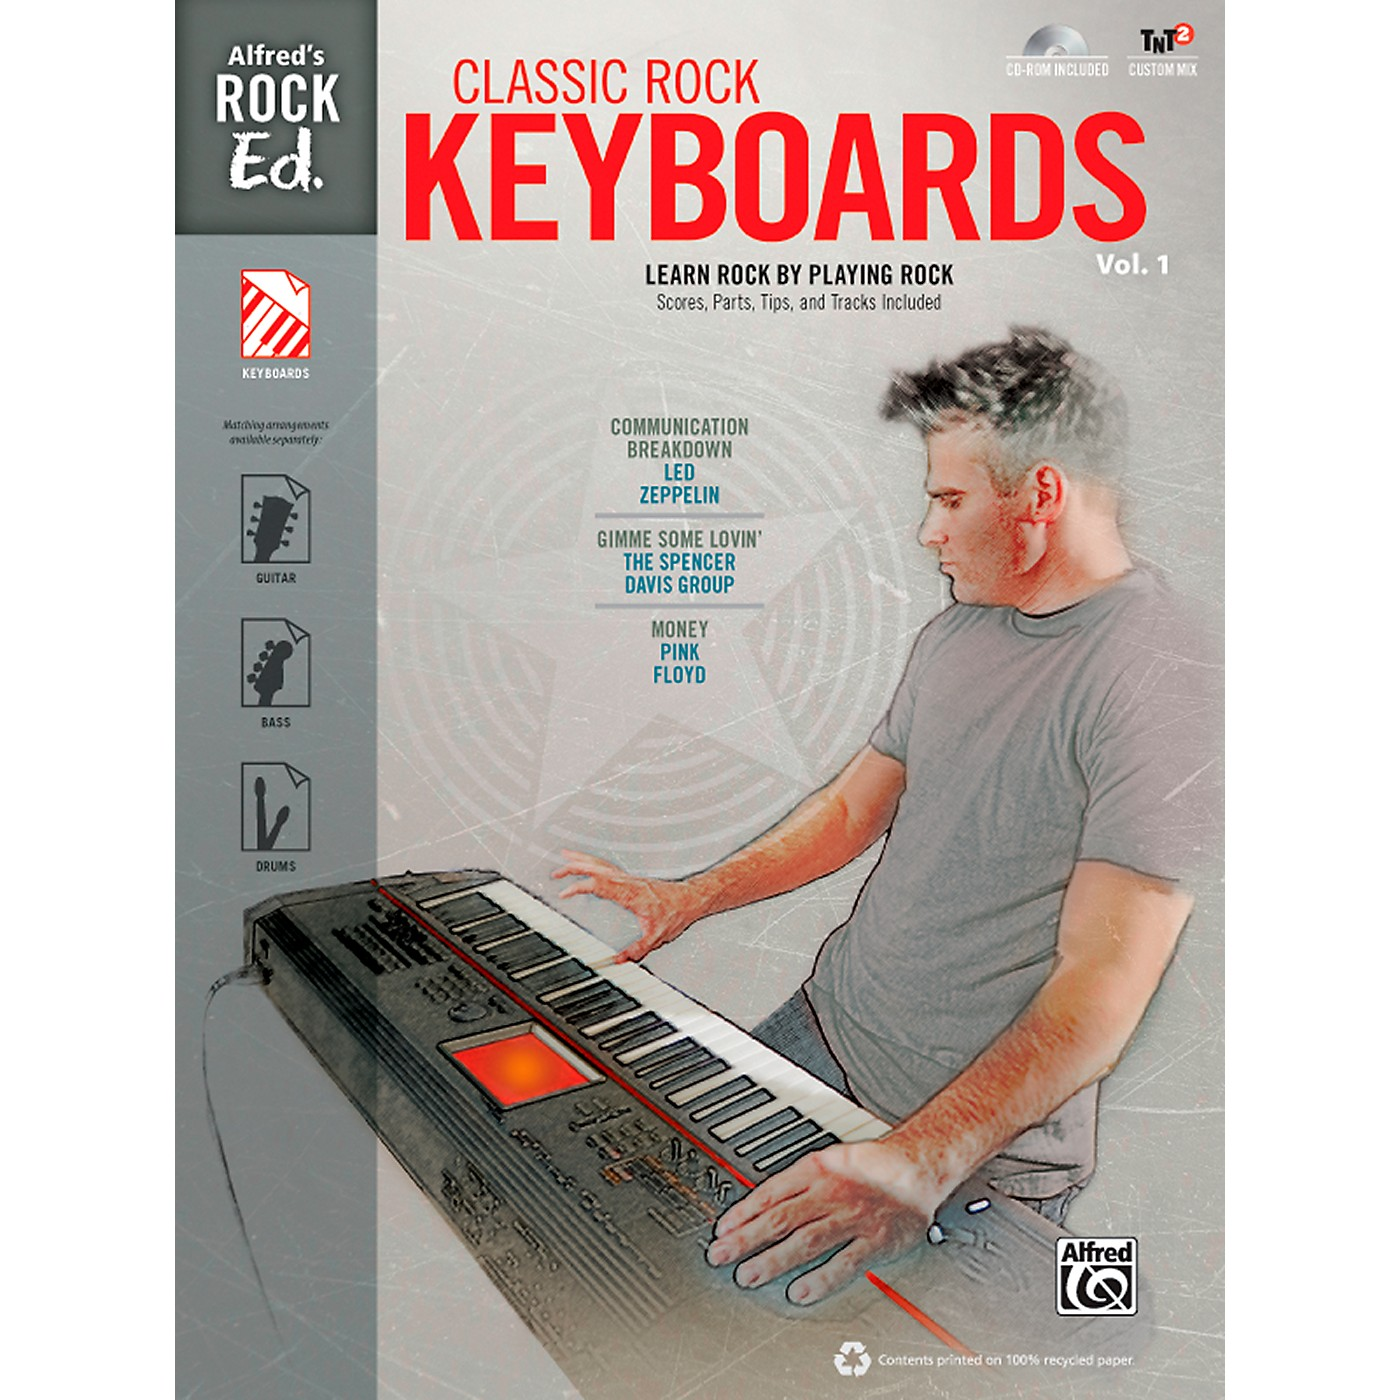 Alfred Alfred's Rock Ed.: Classic Rock Keyboards Vol. 1 Book & CD-ROM thumbnail